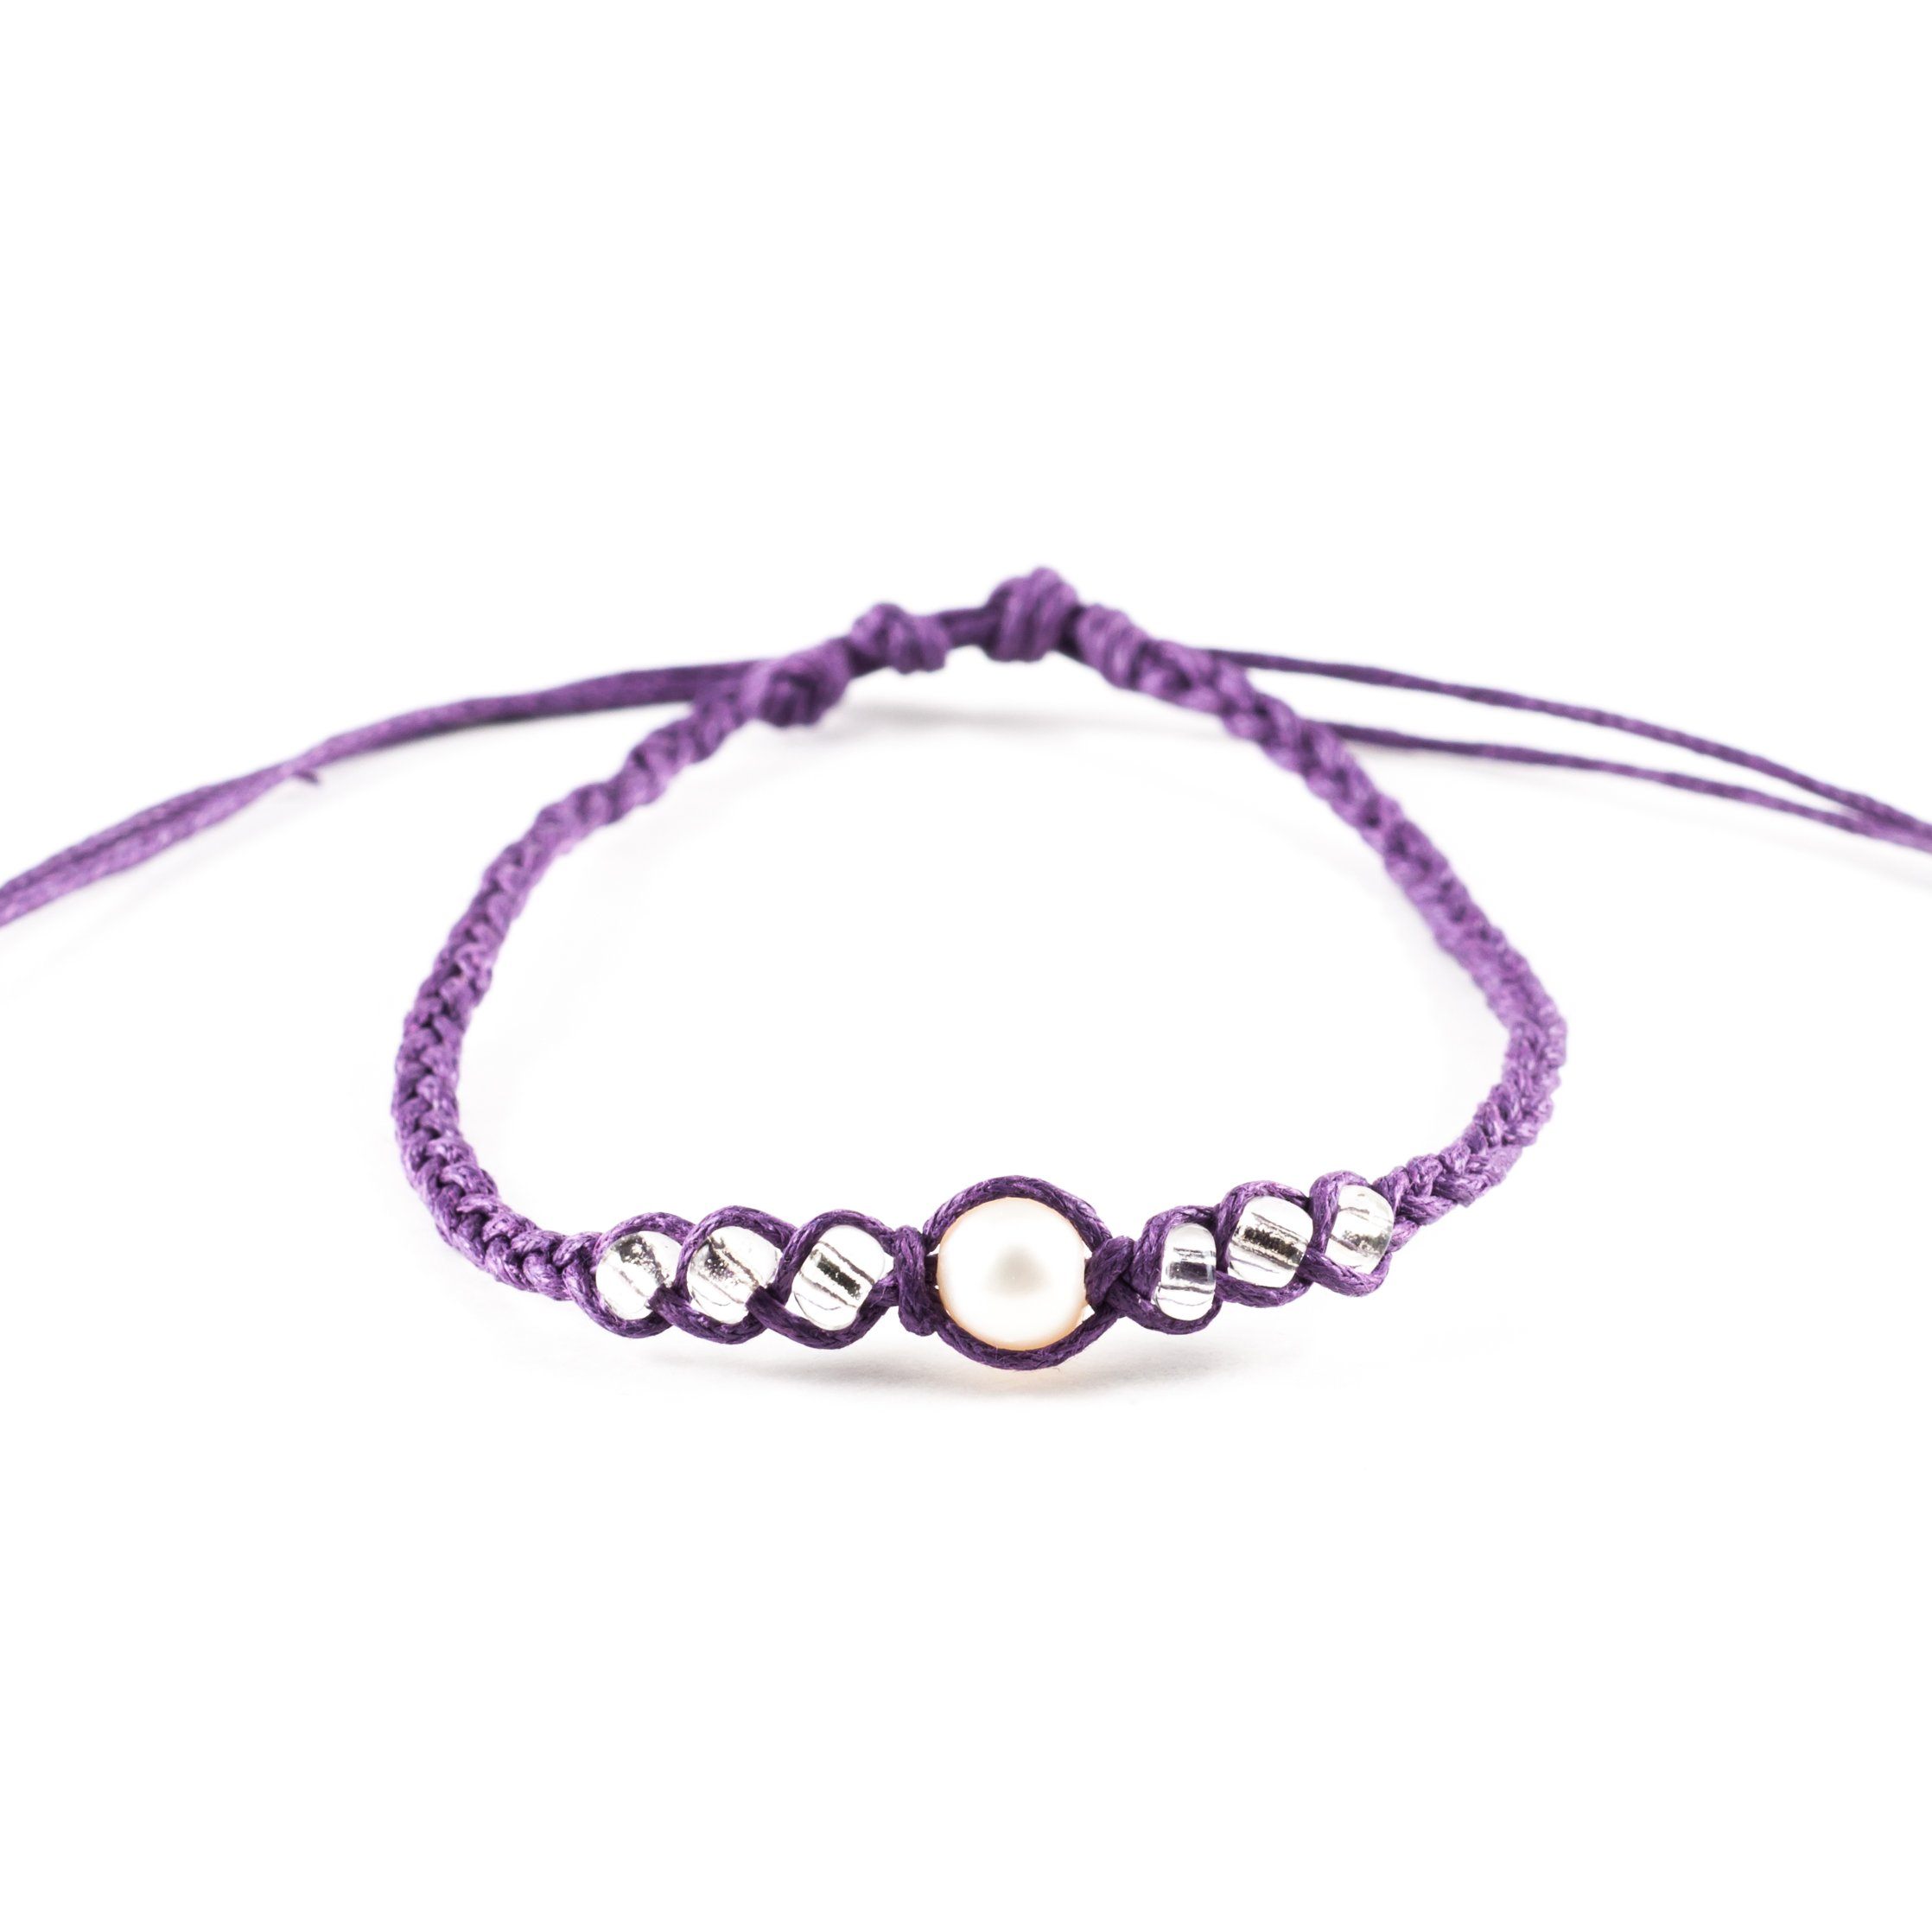 Genuine Cultured Fresh Water Pearl on Adjustable Braided Cord Bracelet with Clear Glass Beads (Purple)